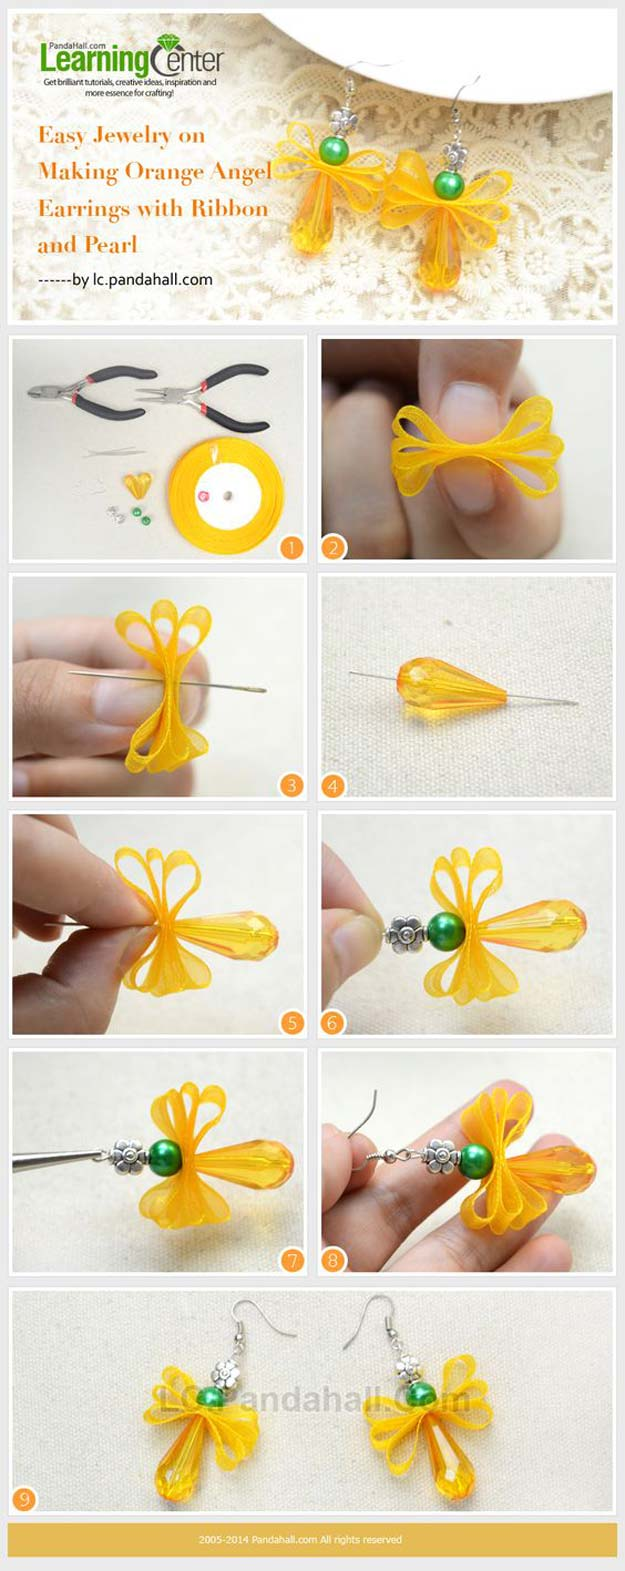 DIY Earrings and Homemade Jewelry Projects - Orange Angel Earrings with Ribbon and Pearl - Easy Studs, Ideas with Beads, Dangle Earring Tutorials, Wire, Feather, Simple Boho, Handmade Earring Cuff, Hoops and Cute Ideas for Teens and Adults #diygifts #diyteens #teengifts #teencrafts #diyearrings